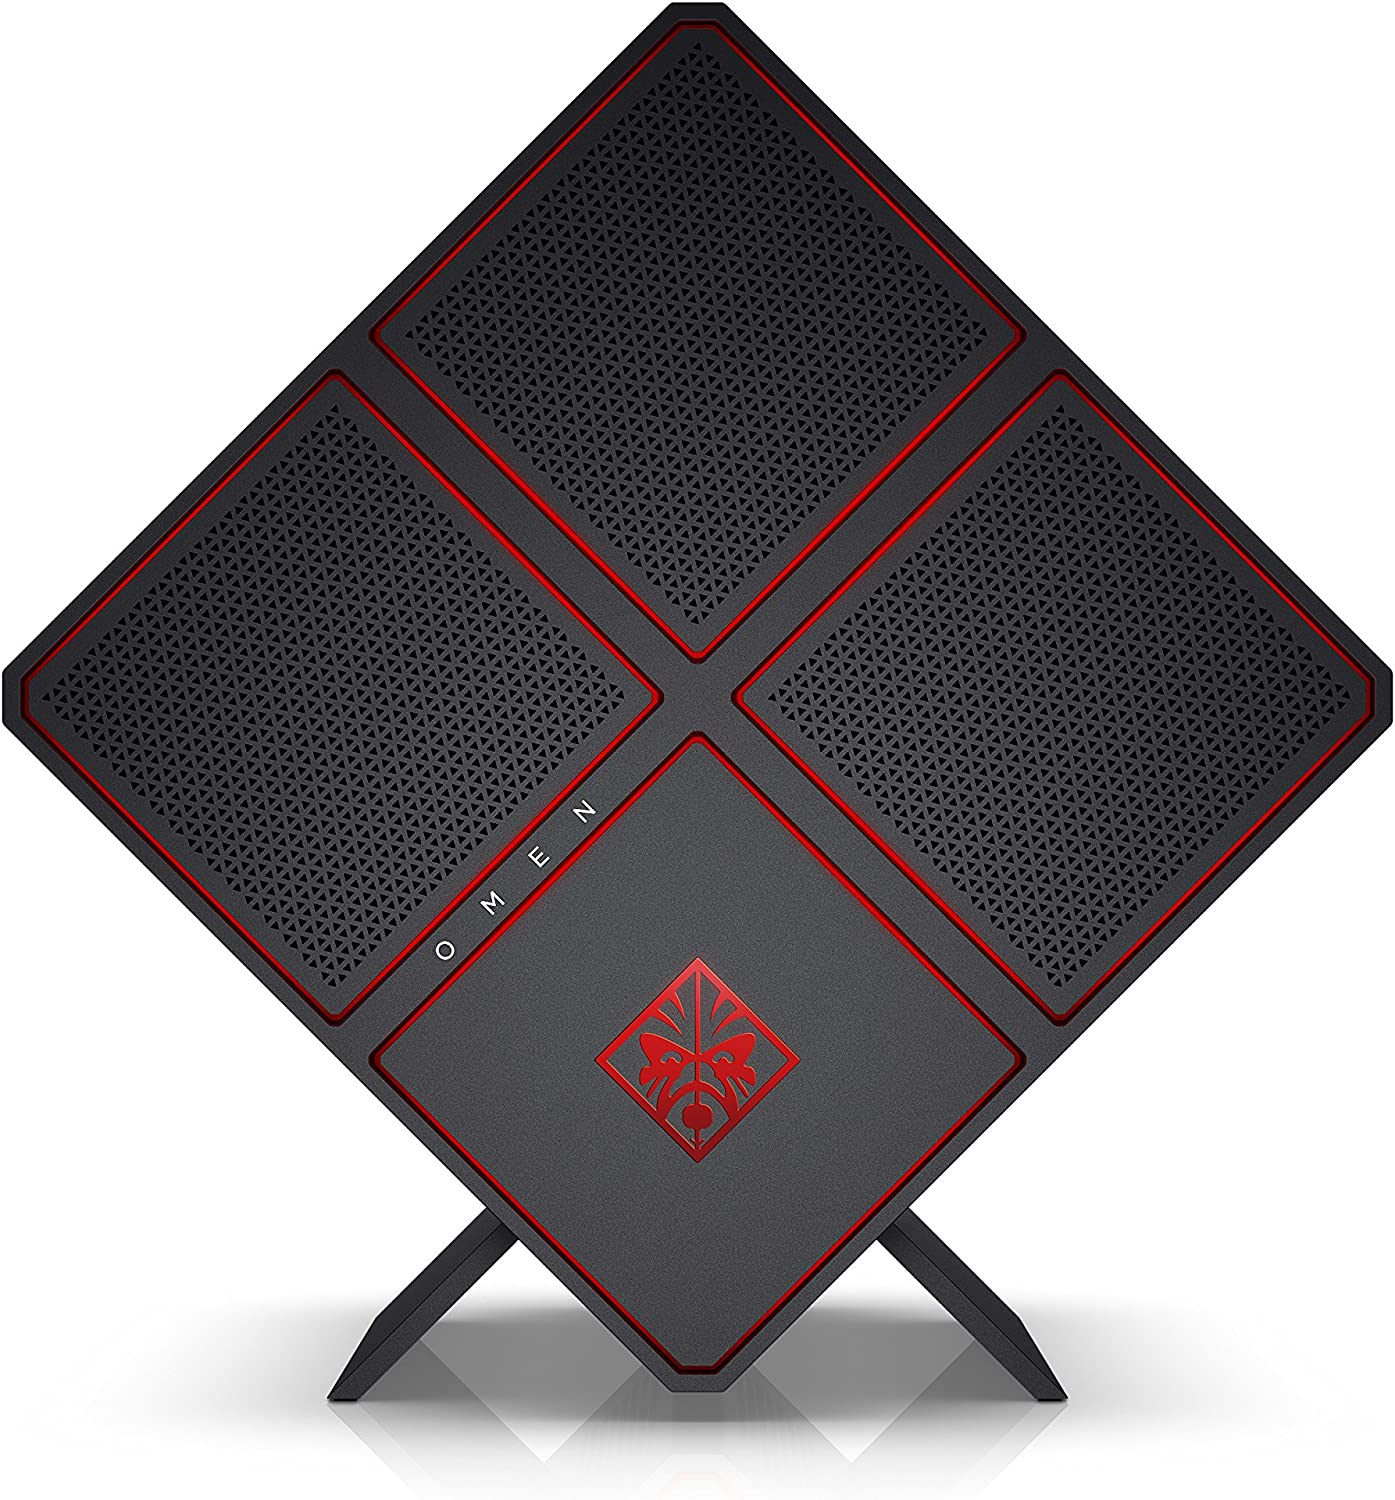 OMEN X by HP Gaming Desktop Computer, Intel Core i7-7820X, NVIDIA GeForce GTX 1080, 16GB RAM, 2TB hard drive, 512GB SSD, Windows 10 (900-210, Black)